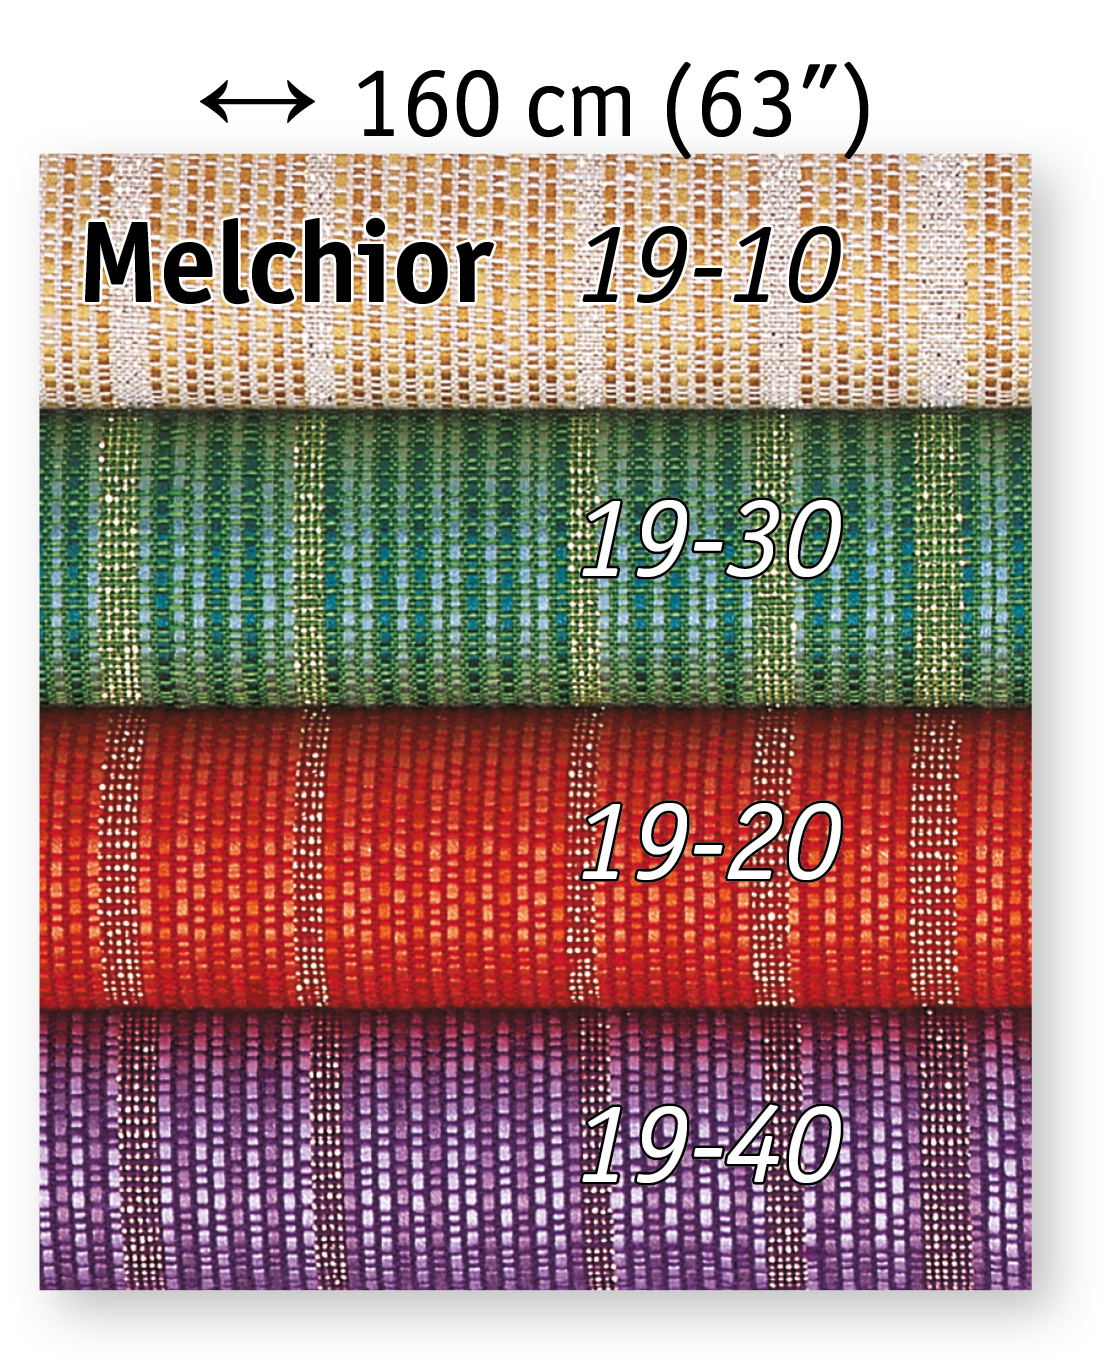 206-19-Mechior-MR